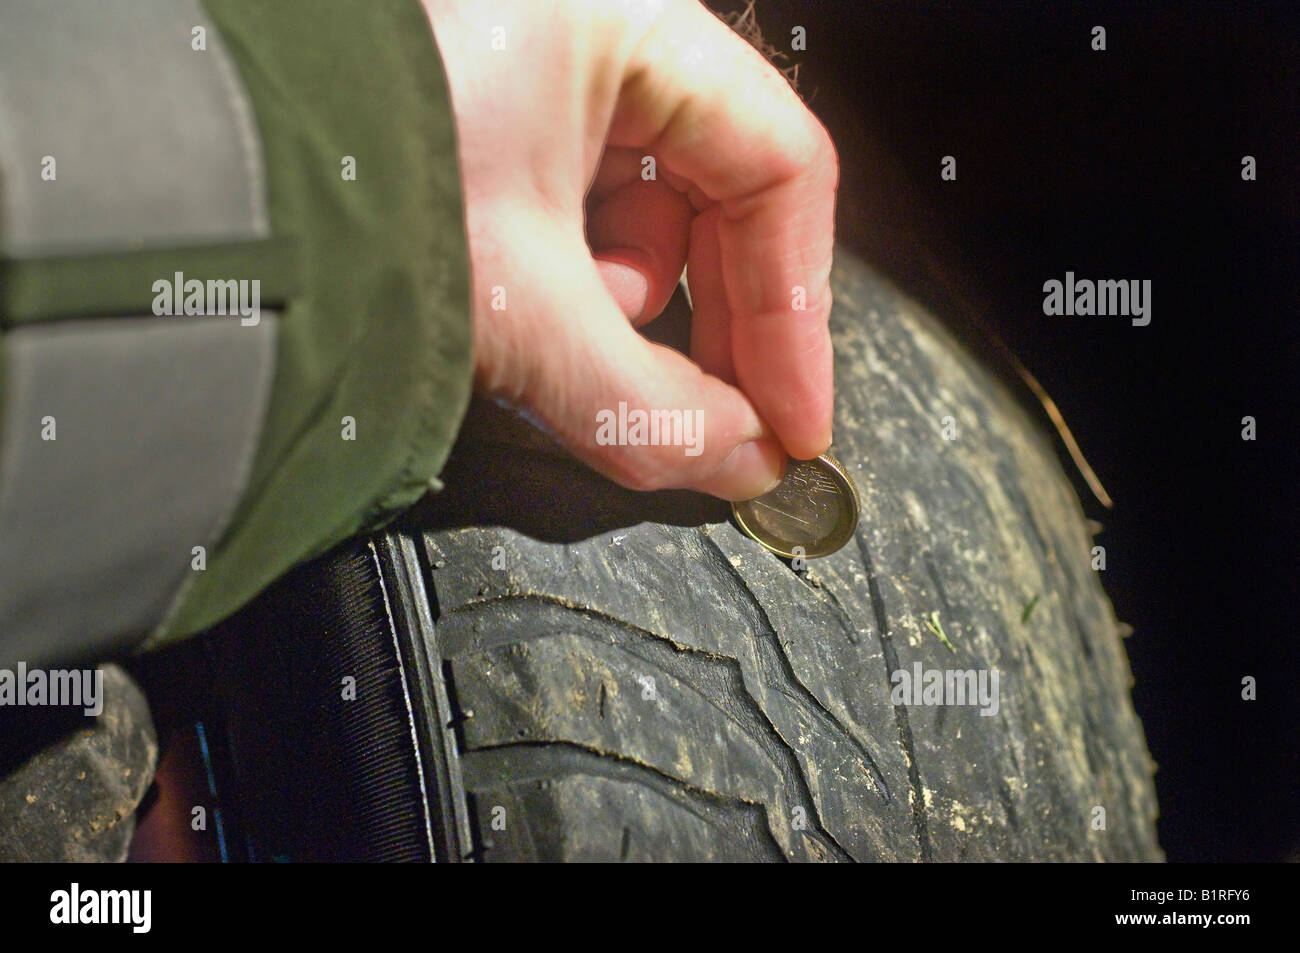 Police officer testing the tread depth of a worn car tire, car accident of a vehicle with four completely worn out - Stock Image